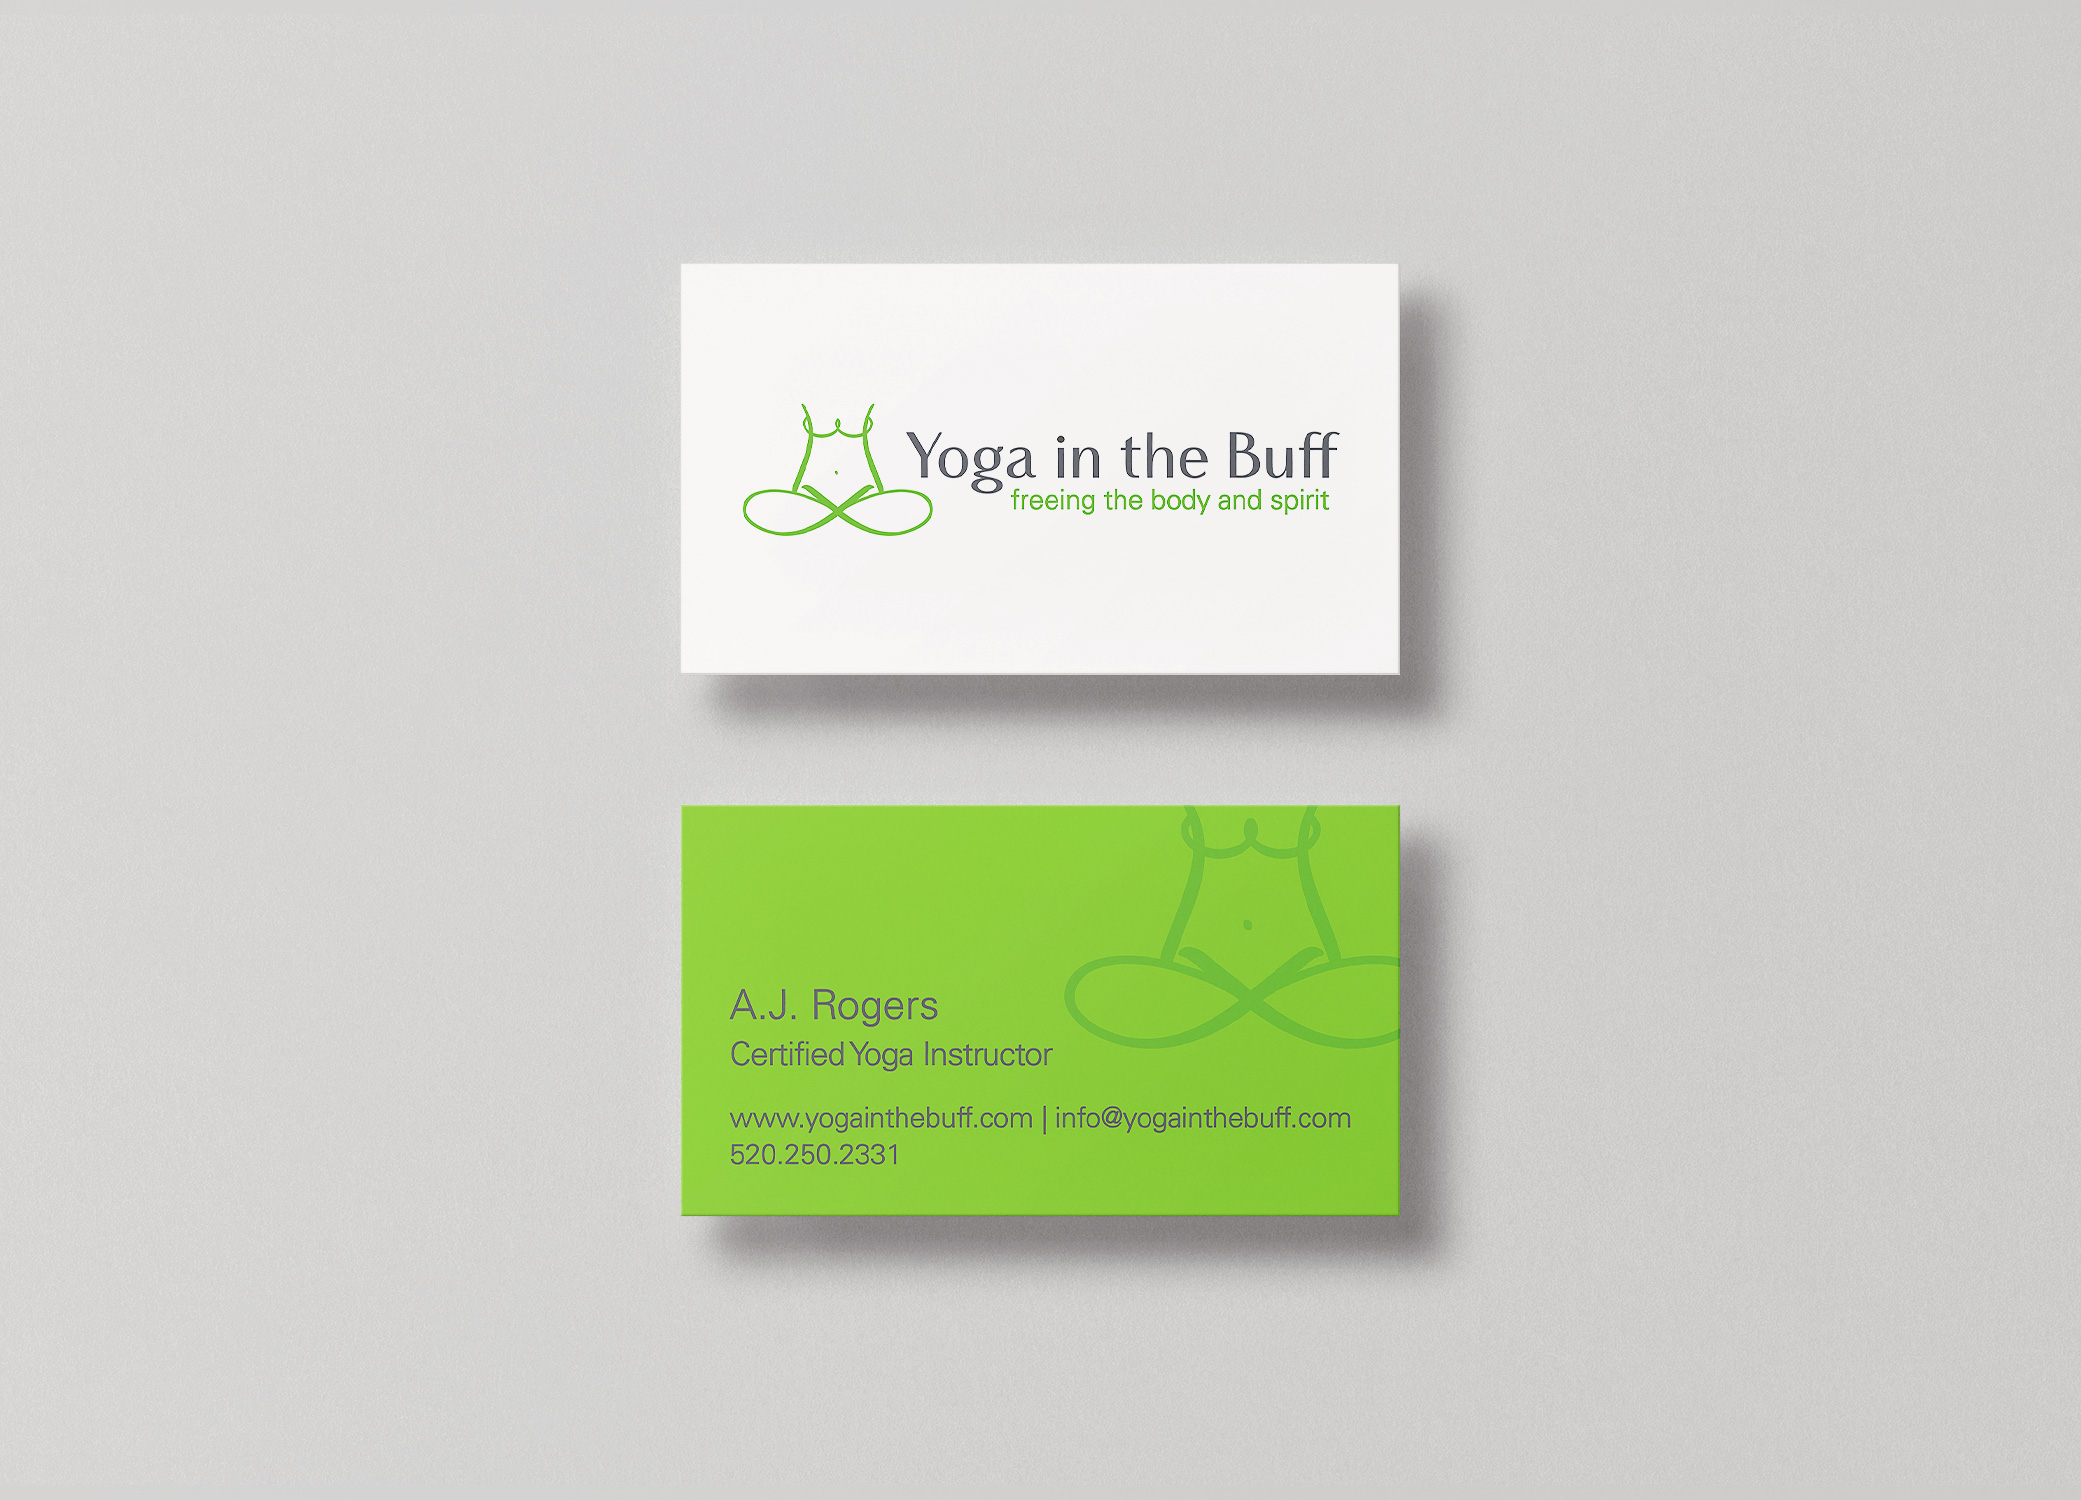 Yoga in the Buff green and white business cards showing front and back with lotus pose design elements.